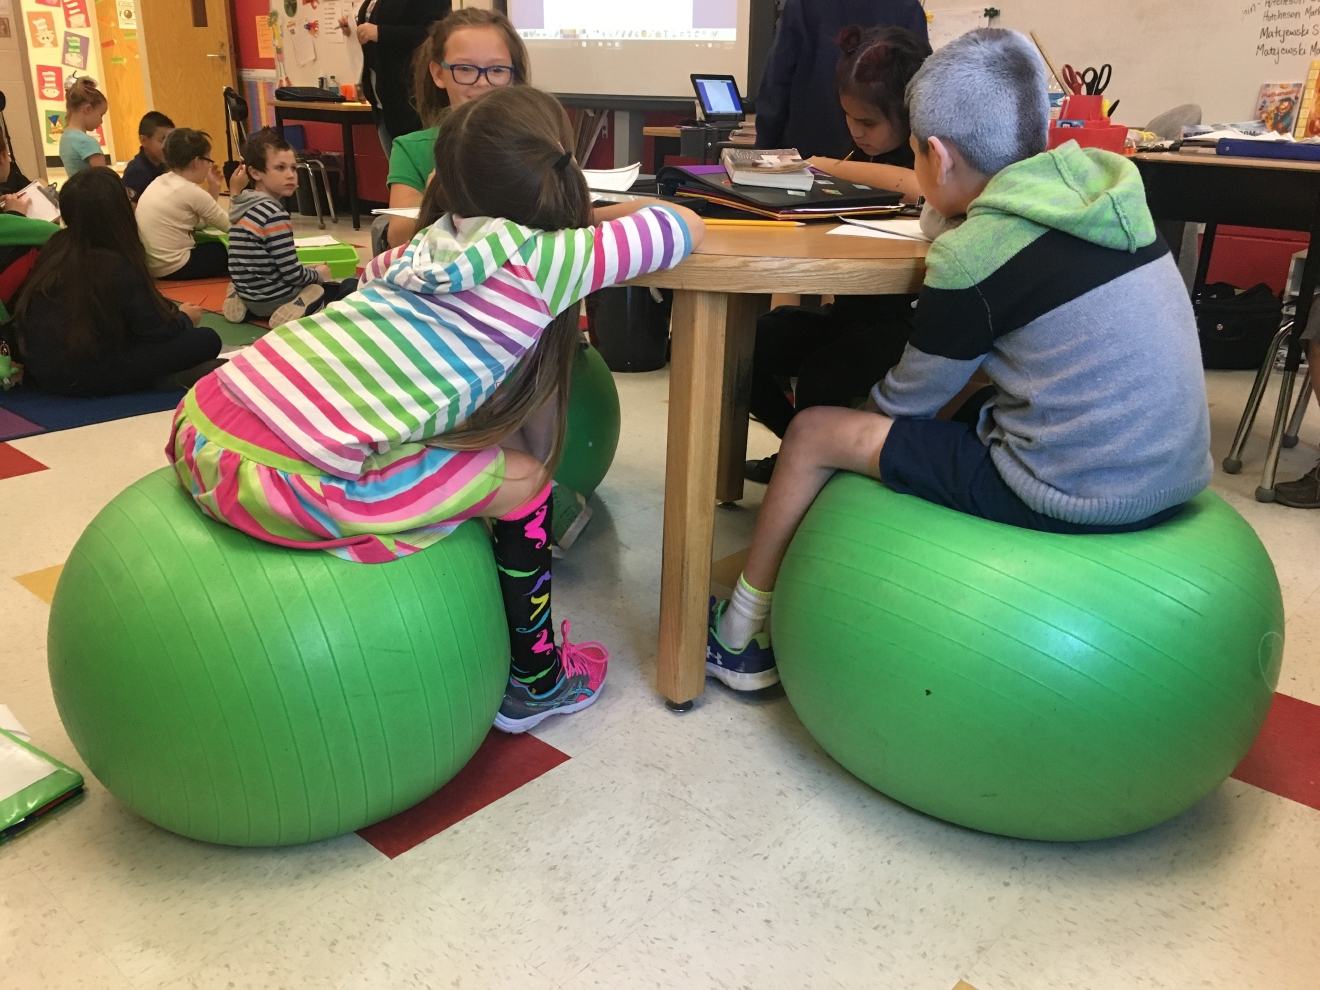 Karen Matejewski, a fourth grade teacher at Pritchardville Elementary School in Bluffton, uses flexible seating to enhance her students' learning environment. (Credit: Josie Gregory)